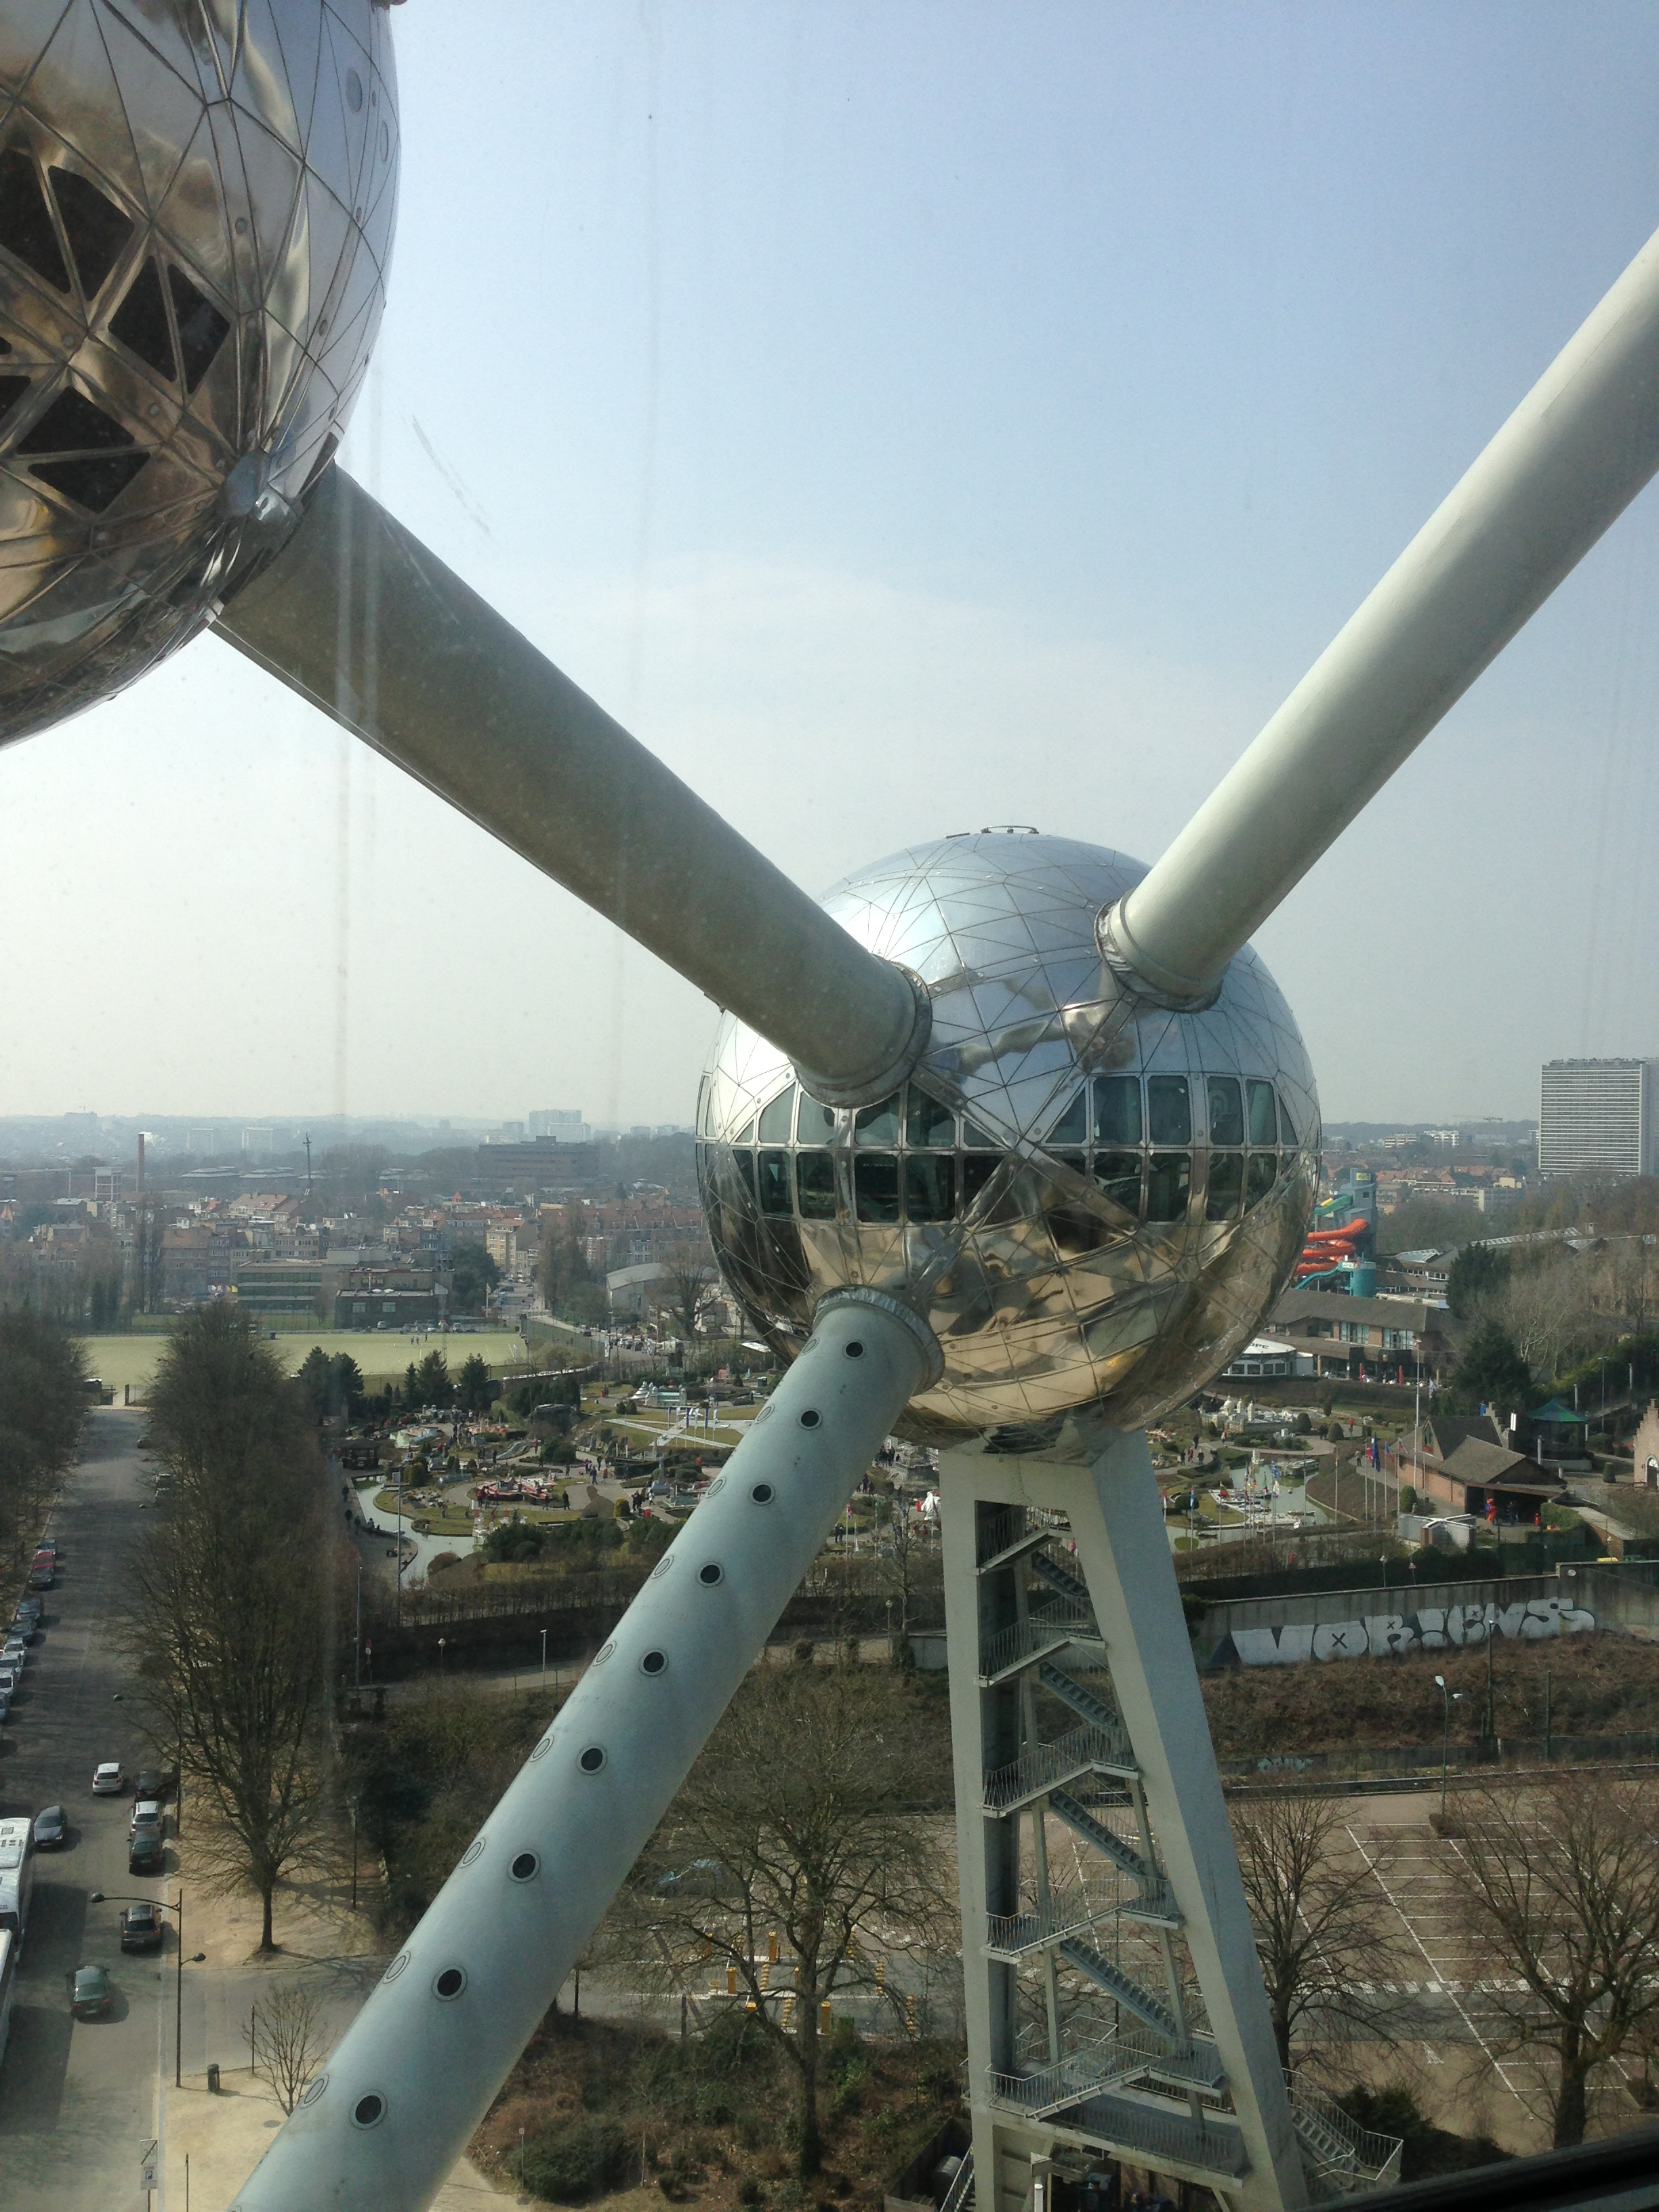 View from the Atomium building in Brussels, Belgium.